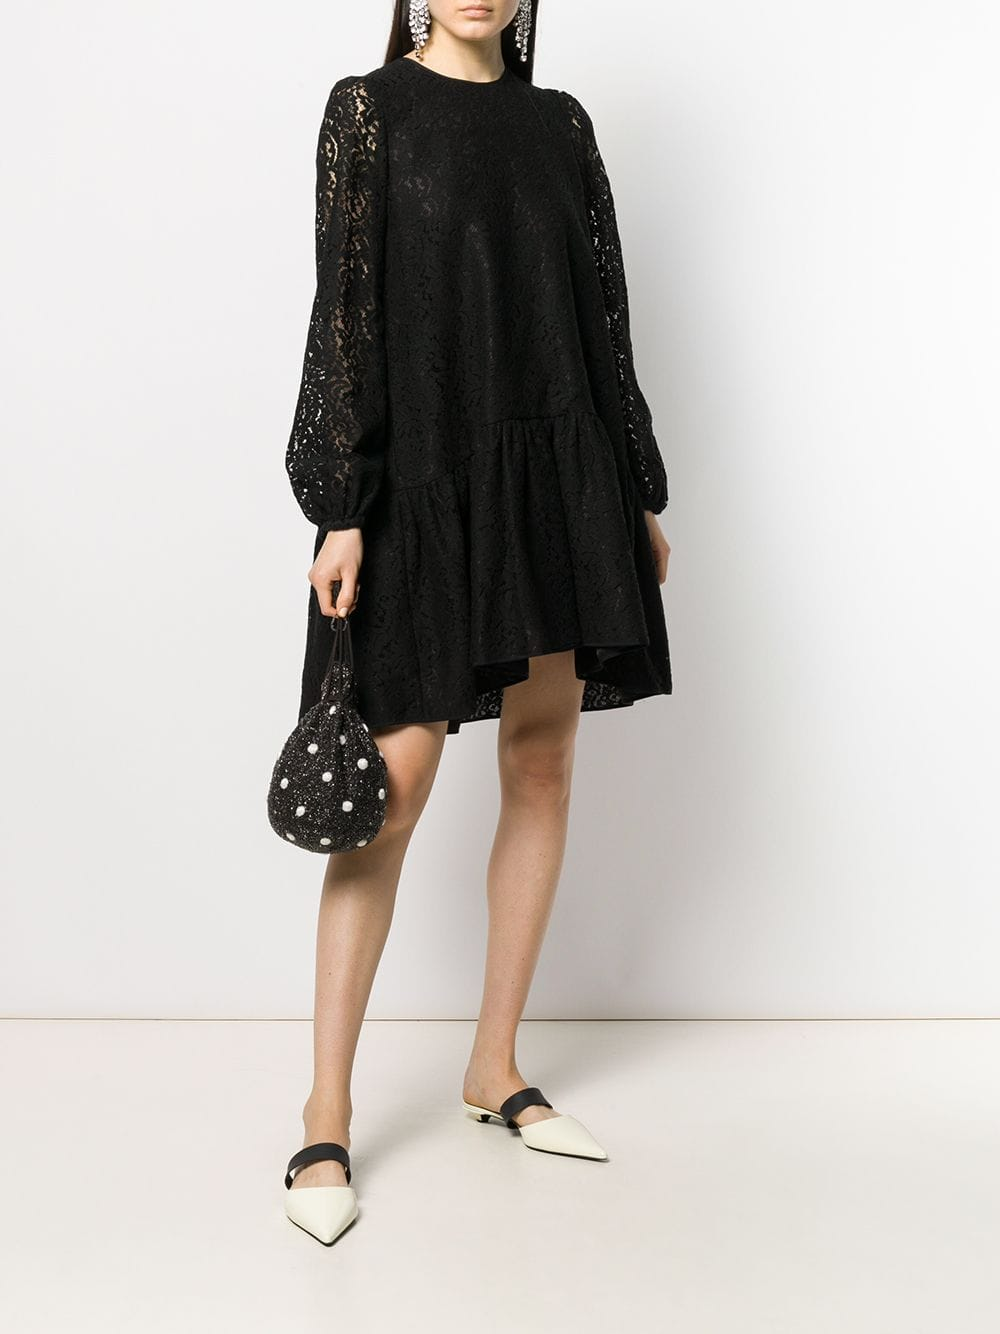 Nº21 Floral Lace Shift Dress